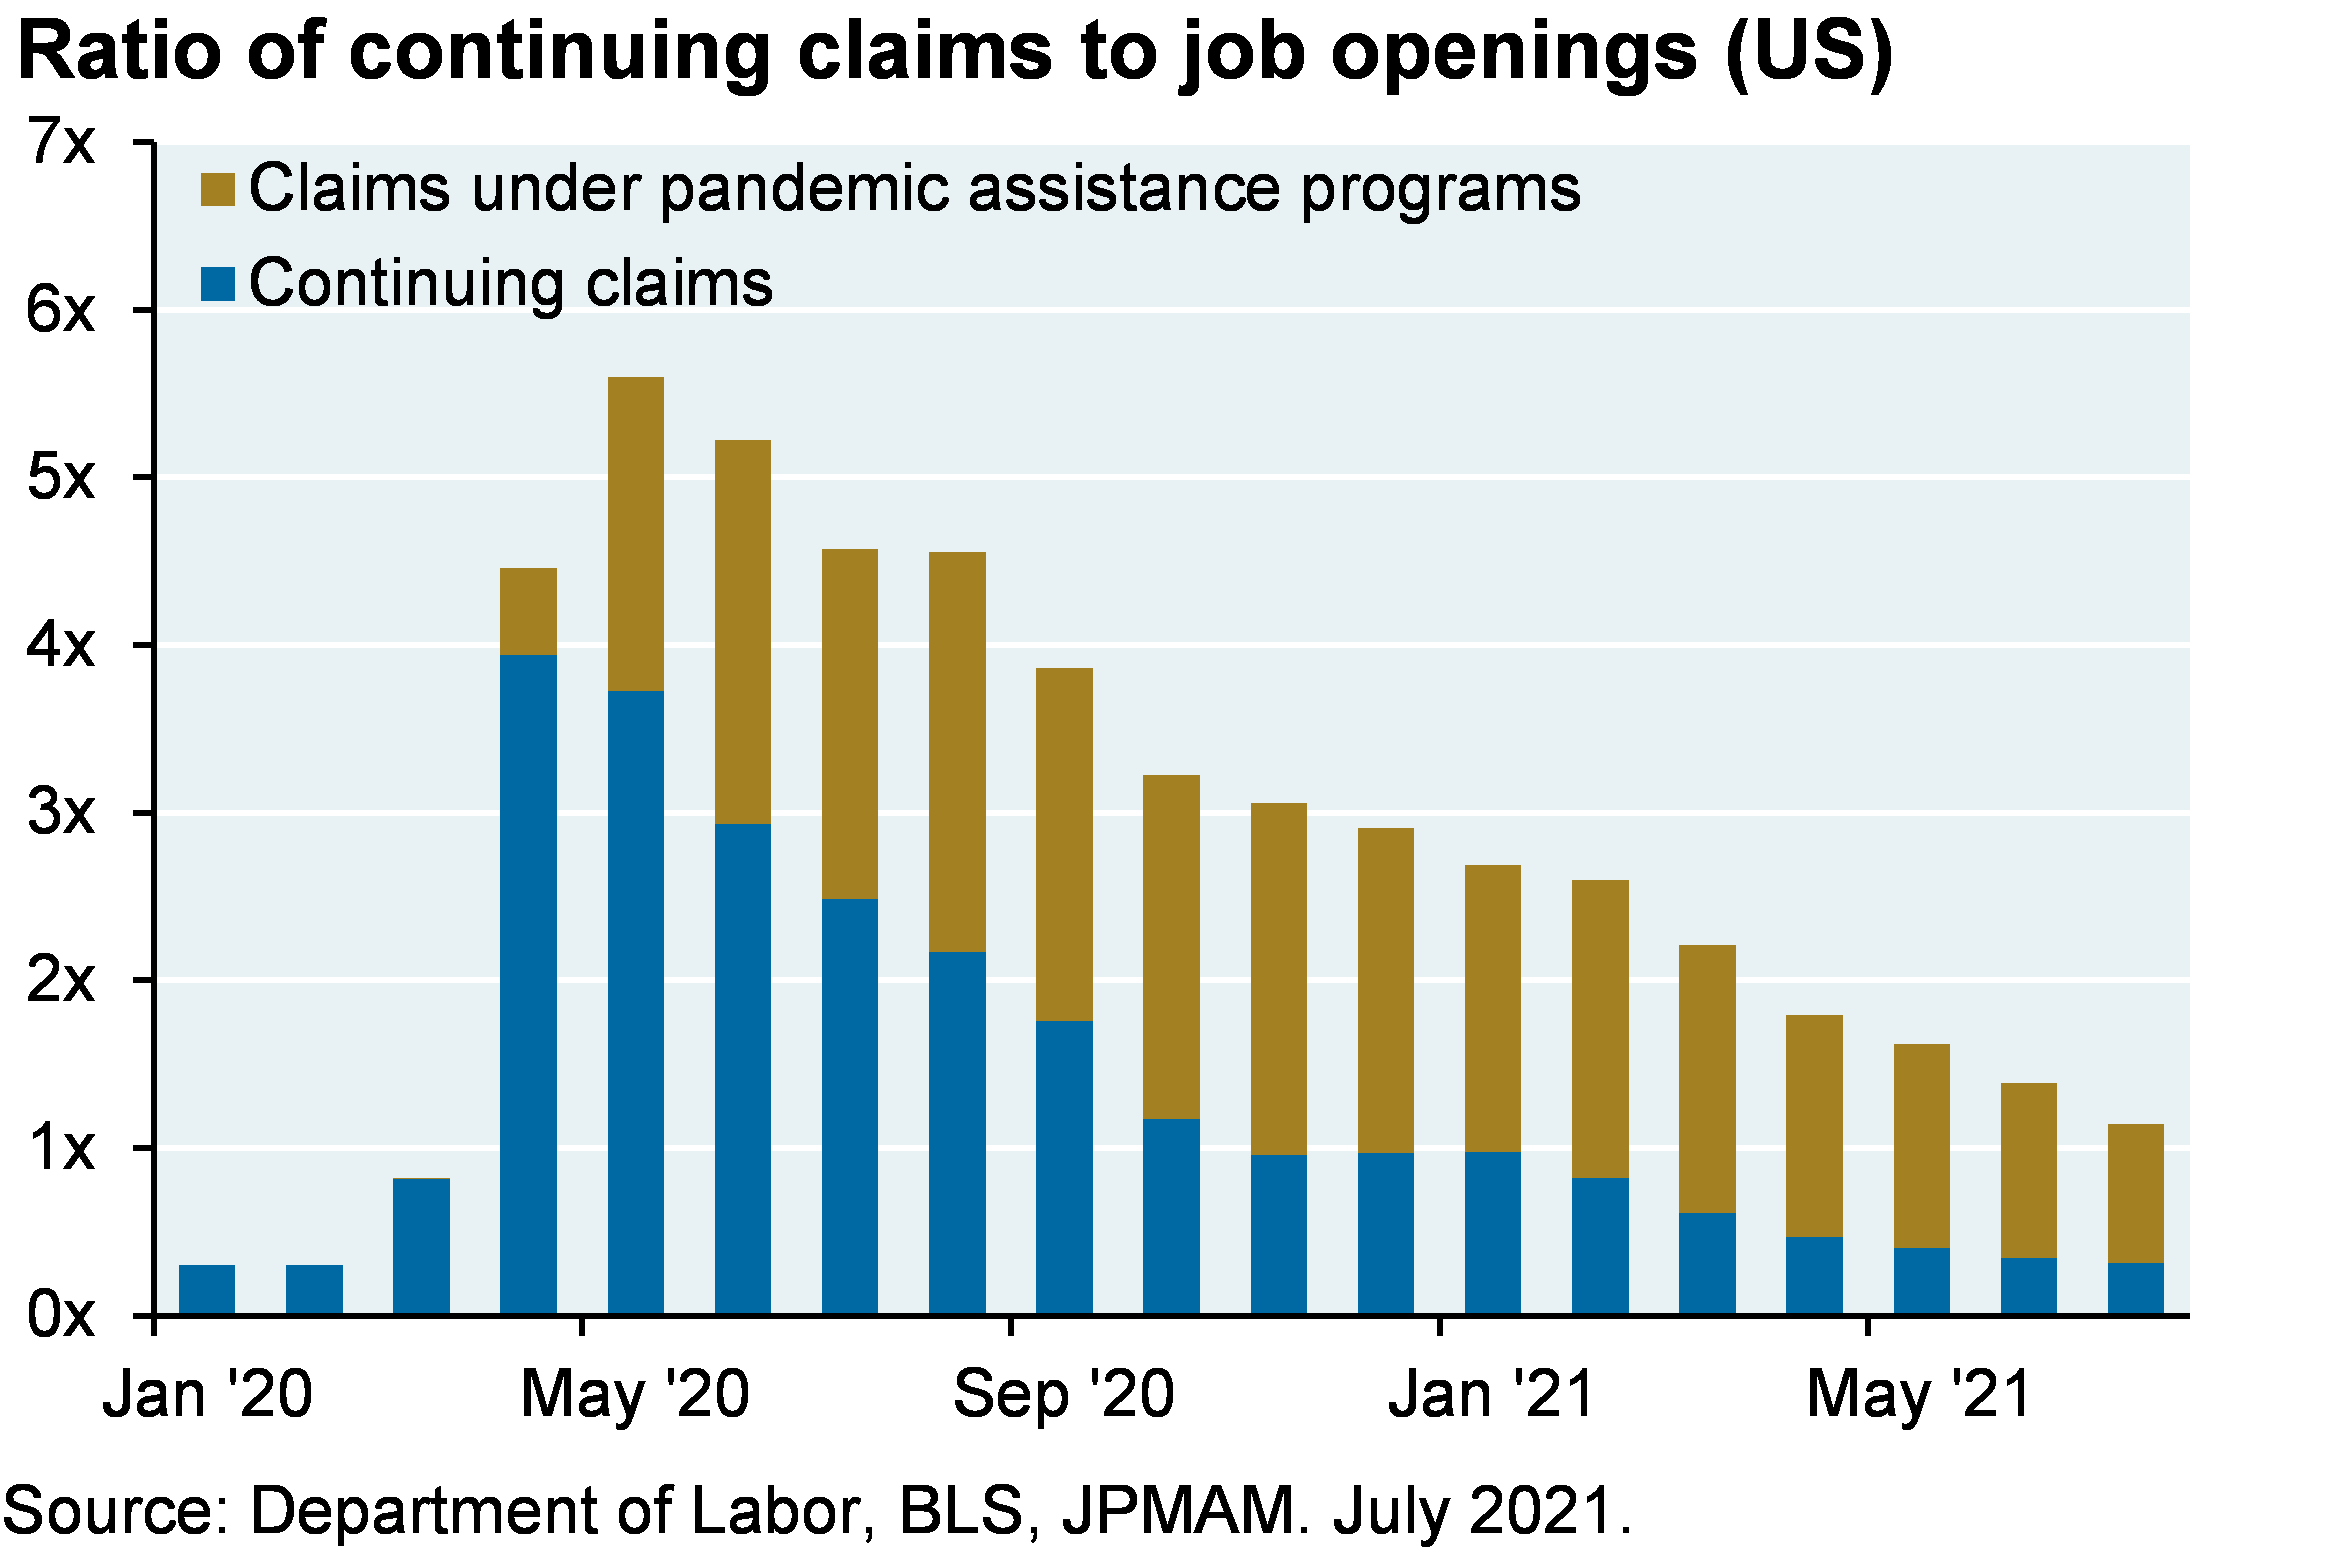 Stacked bar chart shows the ratio of continuing claims to job openings since the beginning of 2021. The chart breaks down all claims into two categories: claims under pandemic assistance programs and all other. The chart shows that 2/3 of those showing up in continuing claims are receiving some form of pandemic unemployment assistance.